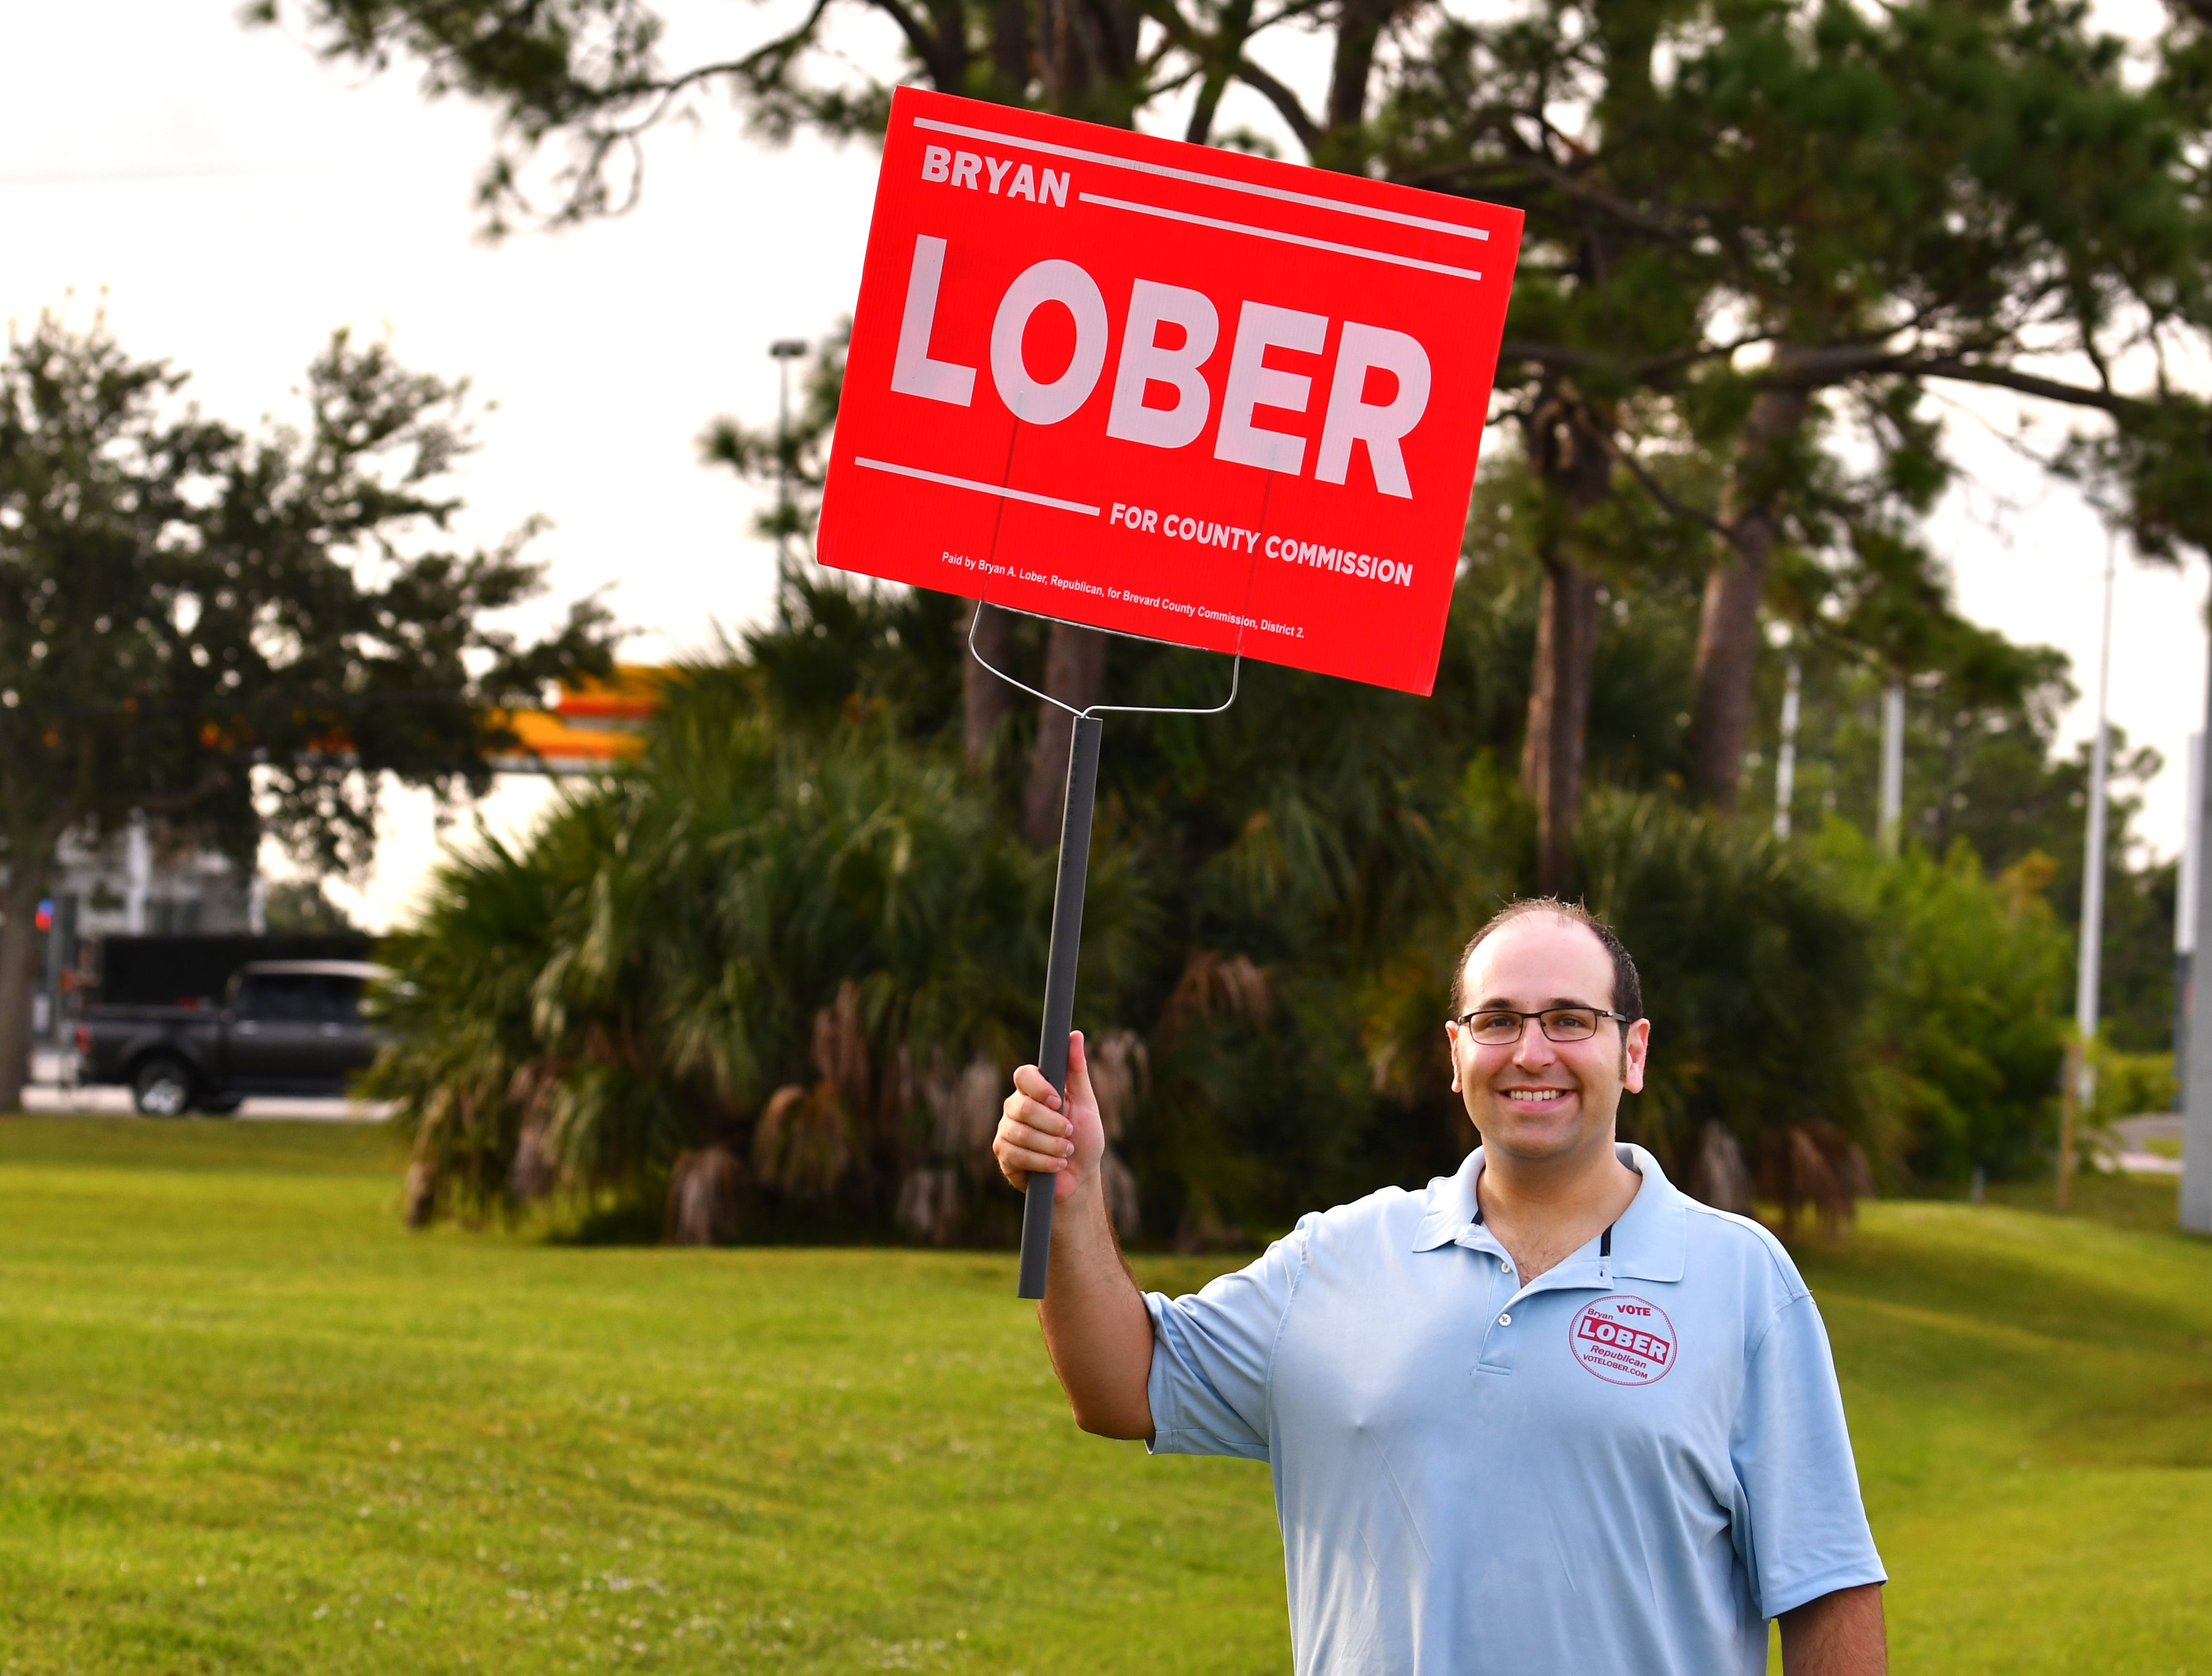 District 2 Republican County Commission candidate Bryan Lober was at the Moose Lodge on Merritt Island as the polls opened.